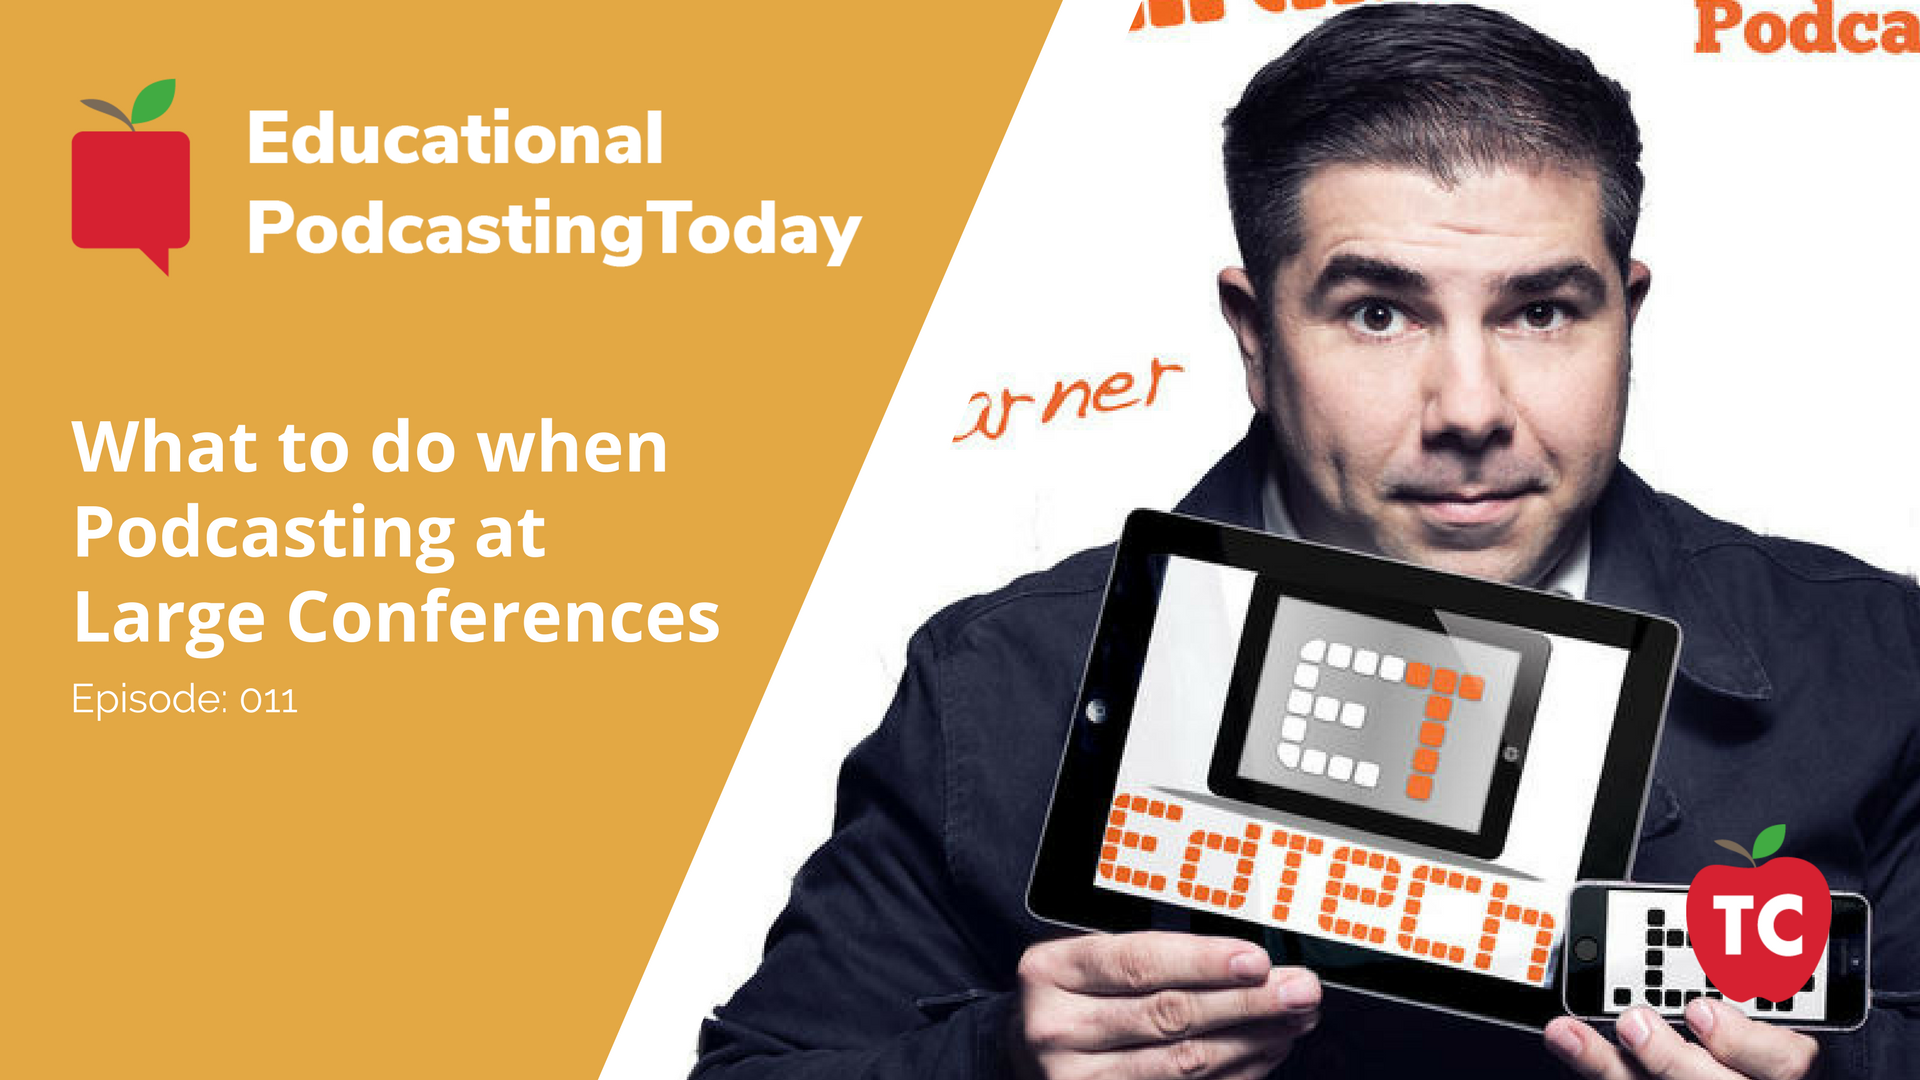 Podcasting at Large Conferences